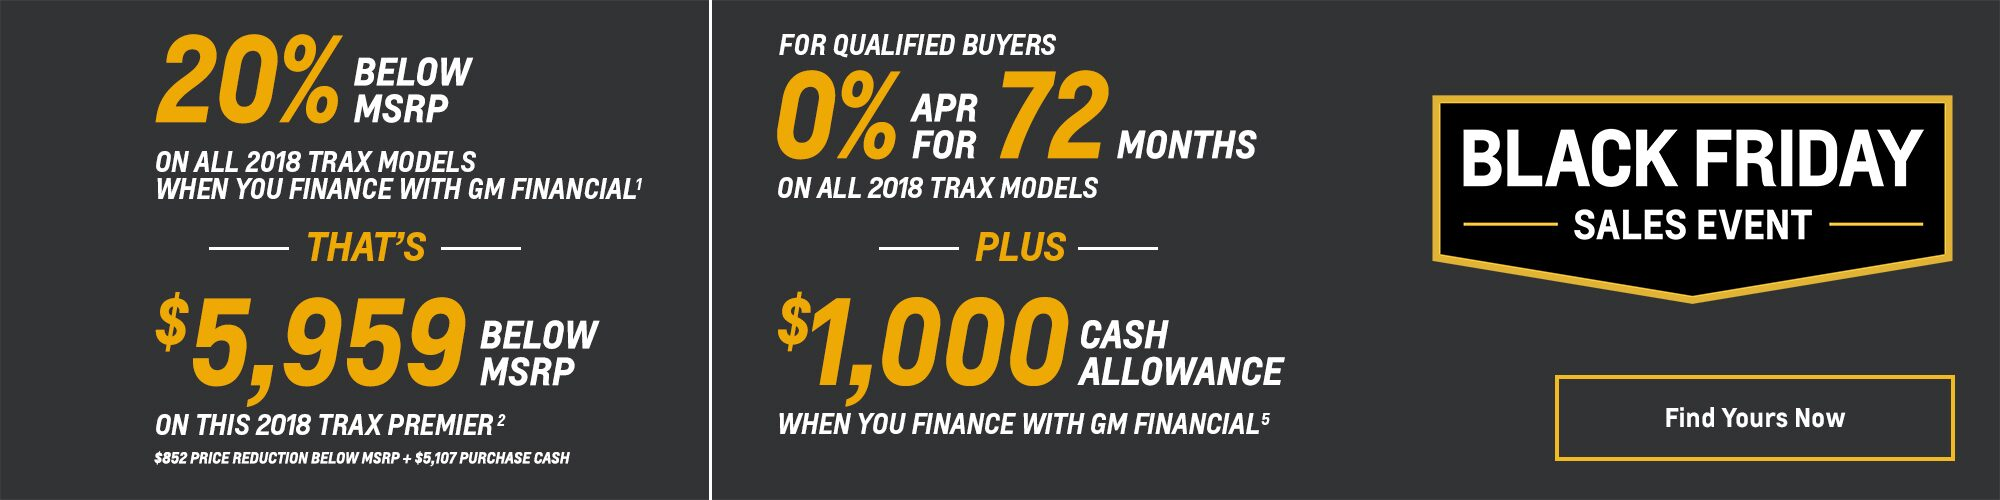 Black Friday Chevy Deals and Offers: 2018 Trax 20% Below MSRP 0% APR